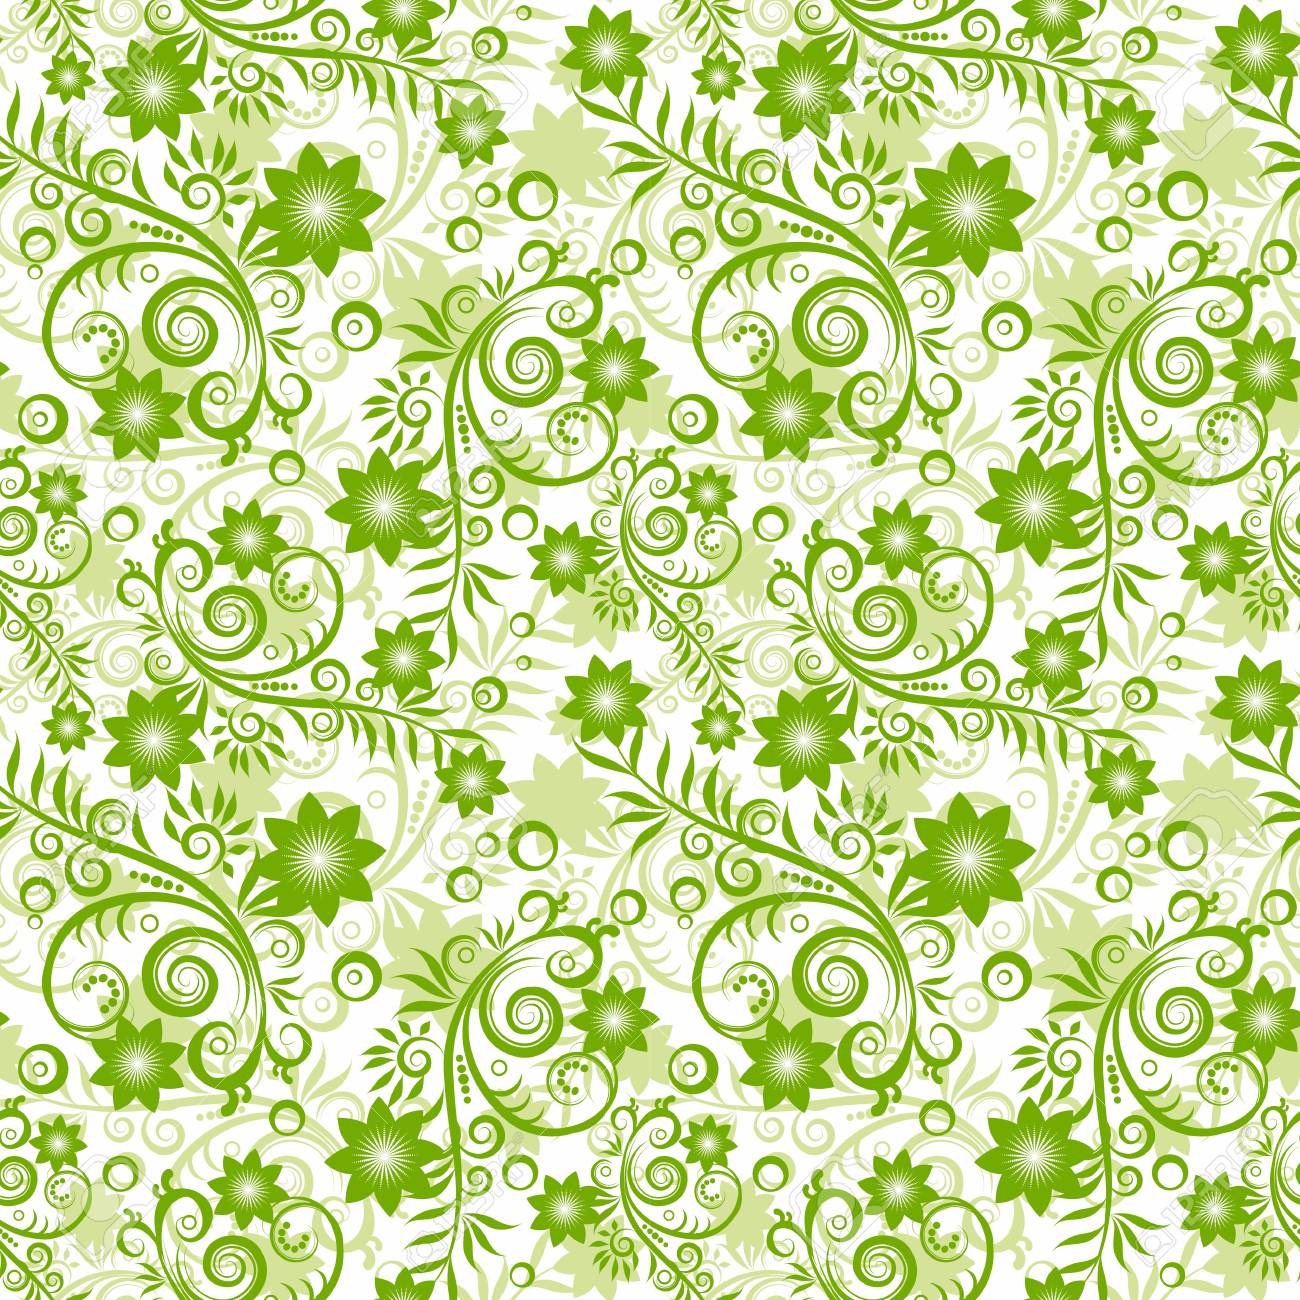 Seamless floral green background. Stock Vector - 9701596